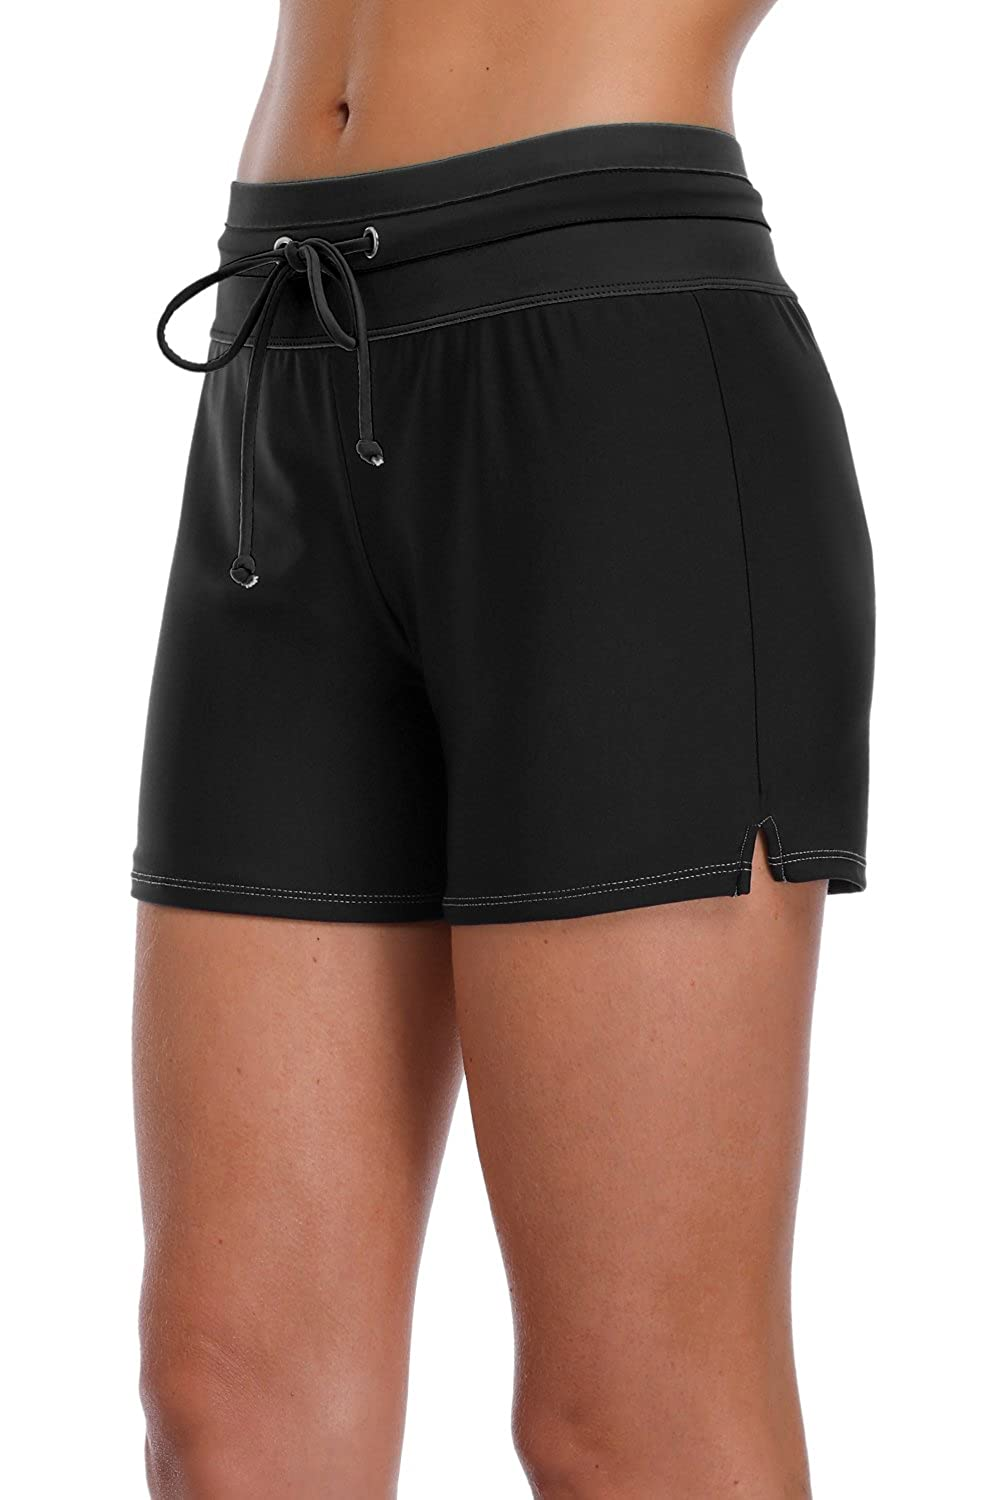 2a2278a5f0 Wide elastic waistband, front tie drawstring, back pocket, front lined.  High waisted swim bottoms give slight tummy control, also don\'t ride up.